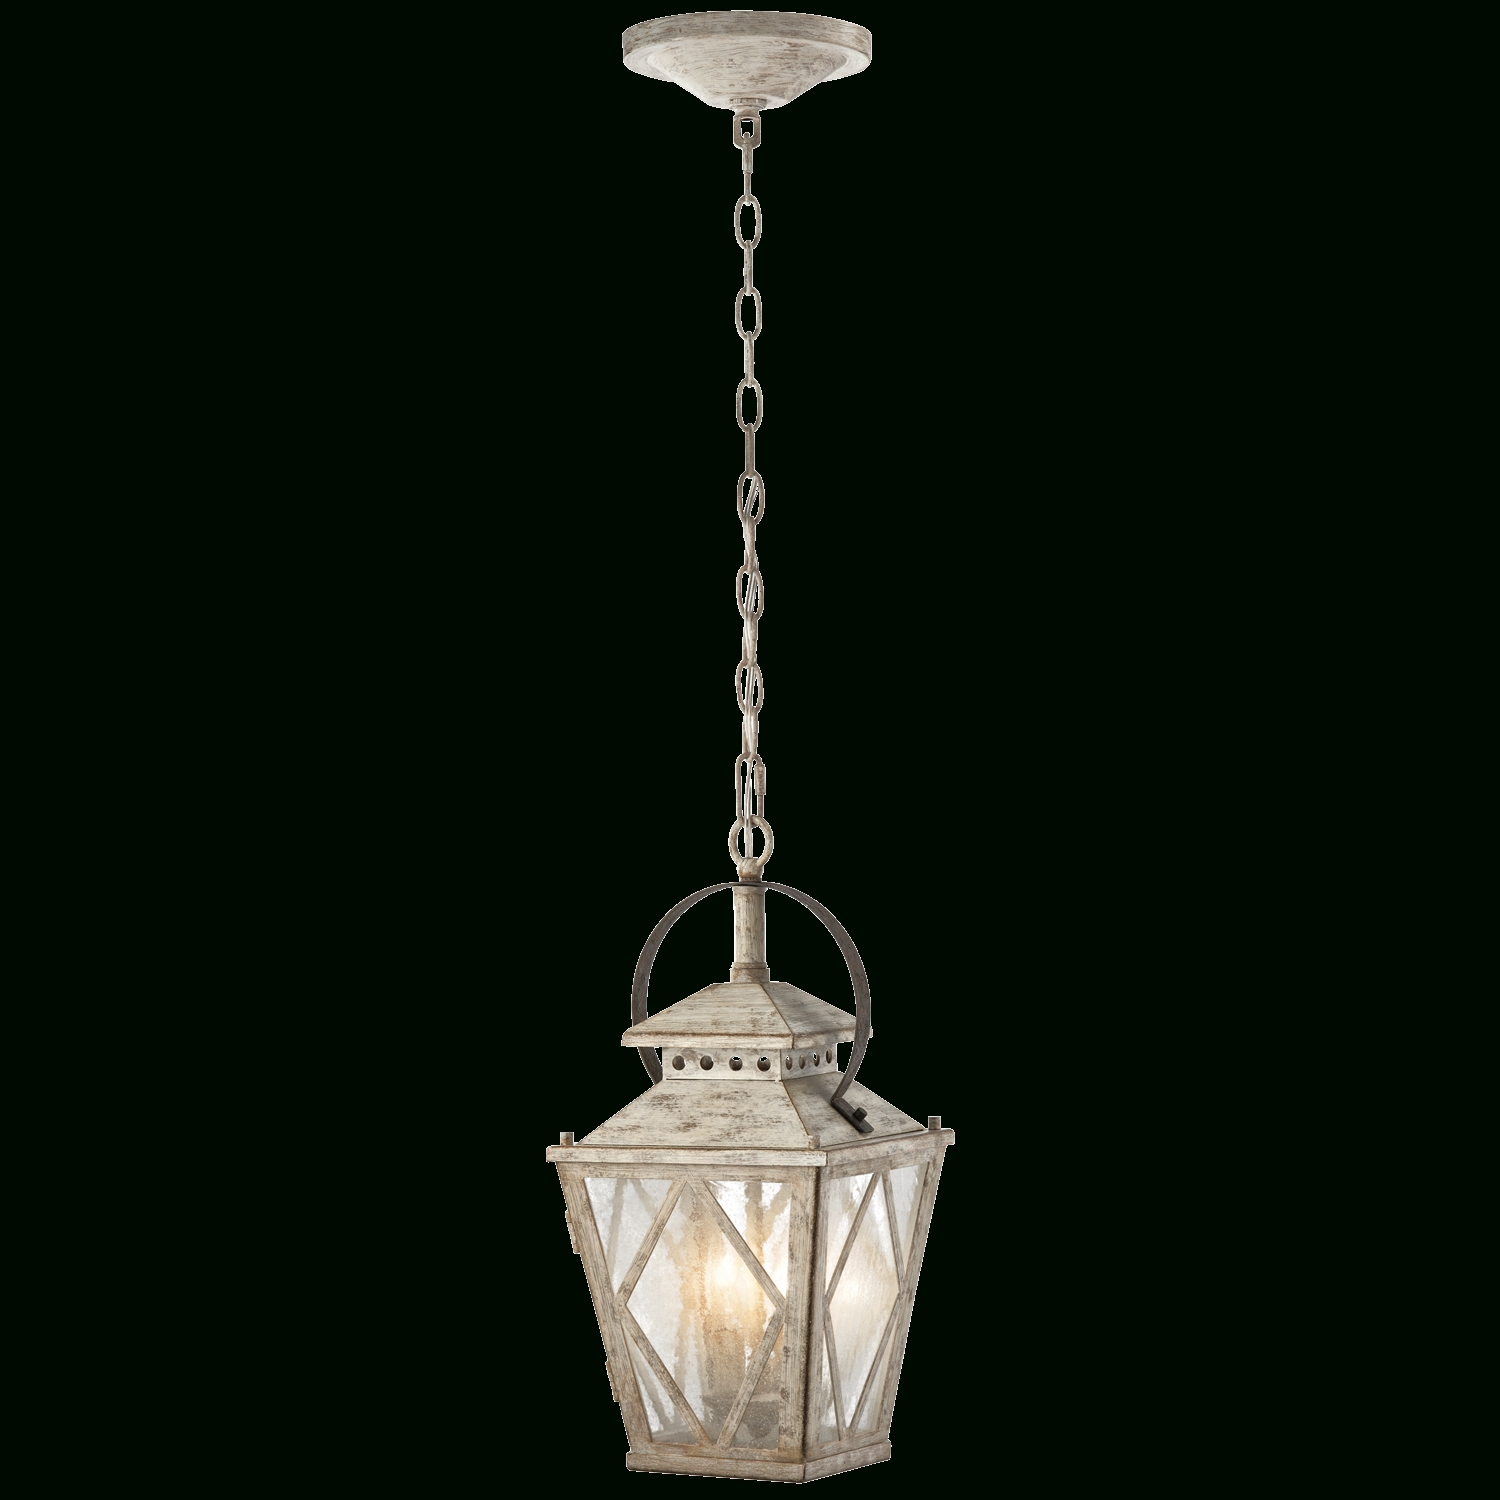 Kichler Outdoor Hanging Lights Inside Well Known 2 Light Pendant (43258daw) Distressed Antique White (View 17 of 20)